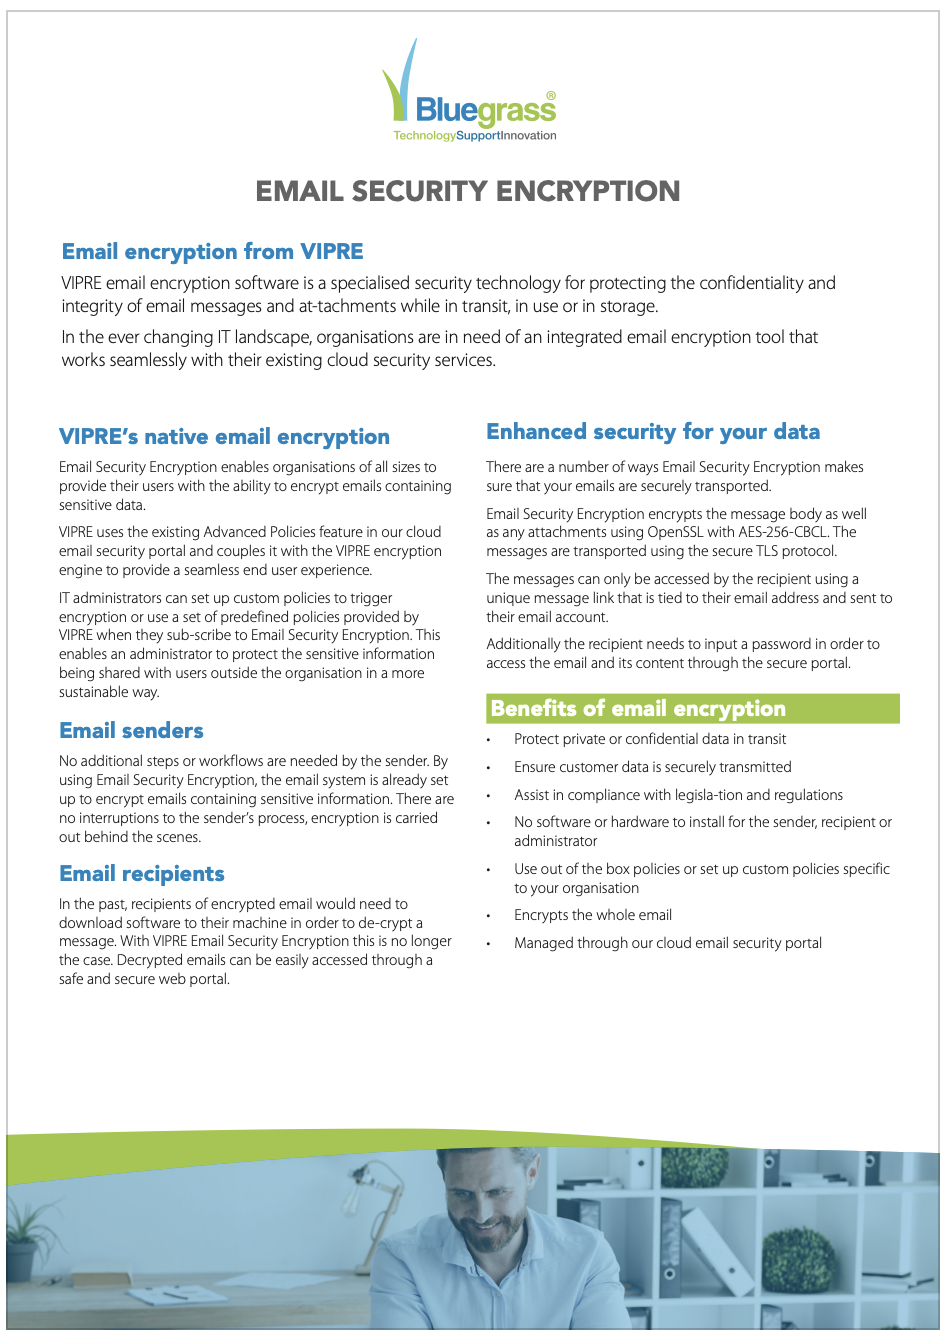 Email Security Encryption